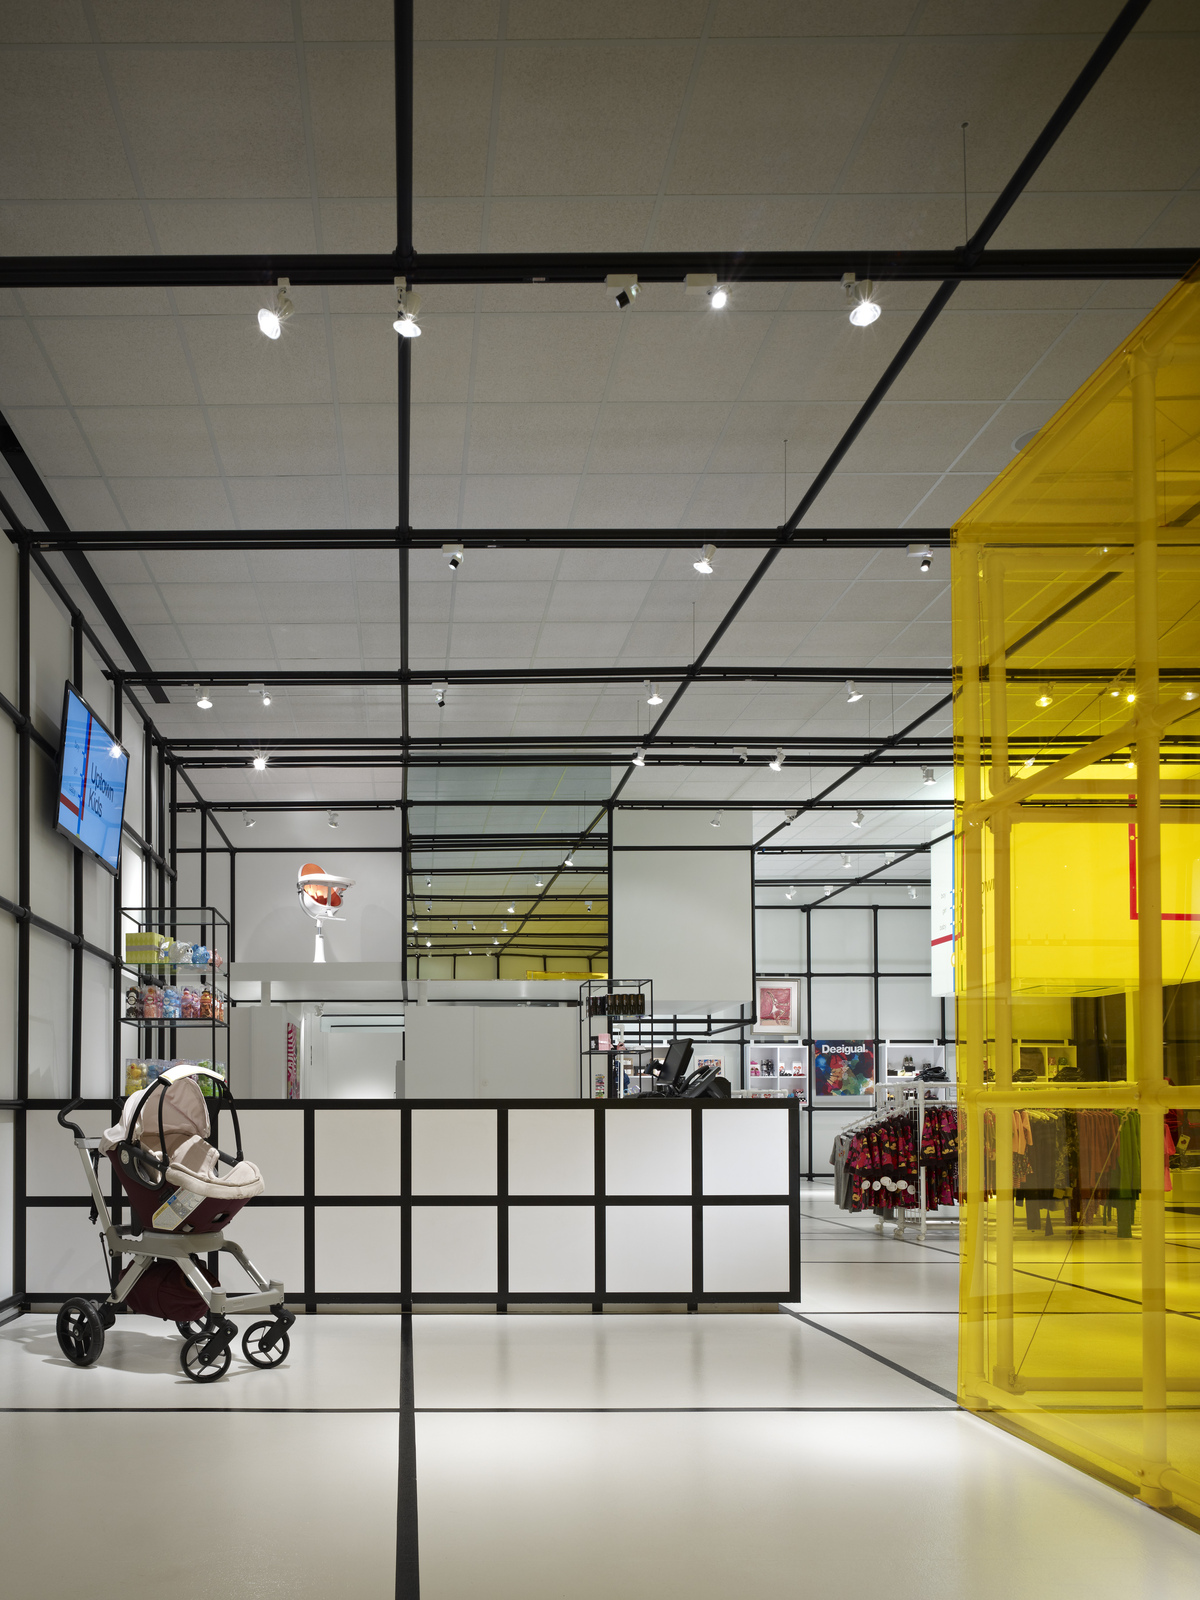 Uptown kids elliott associates architects archinect for Interior design room grid